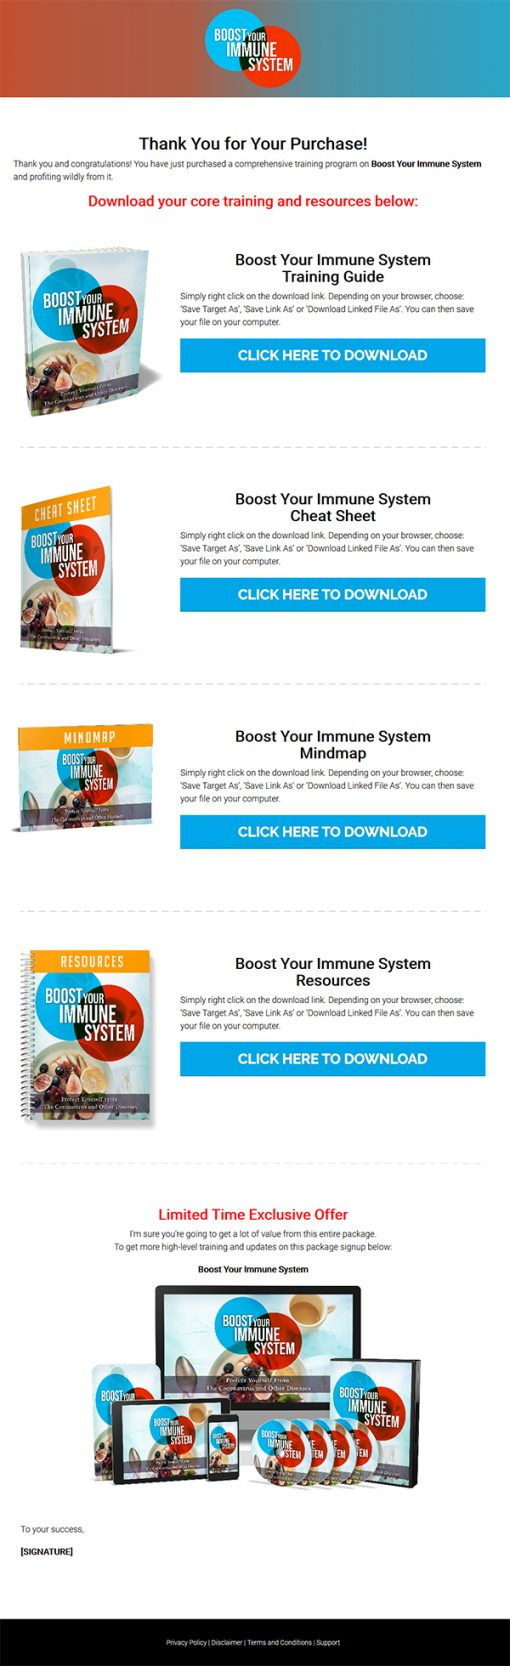 Boost Your Immune System Ebook and Videos MRR